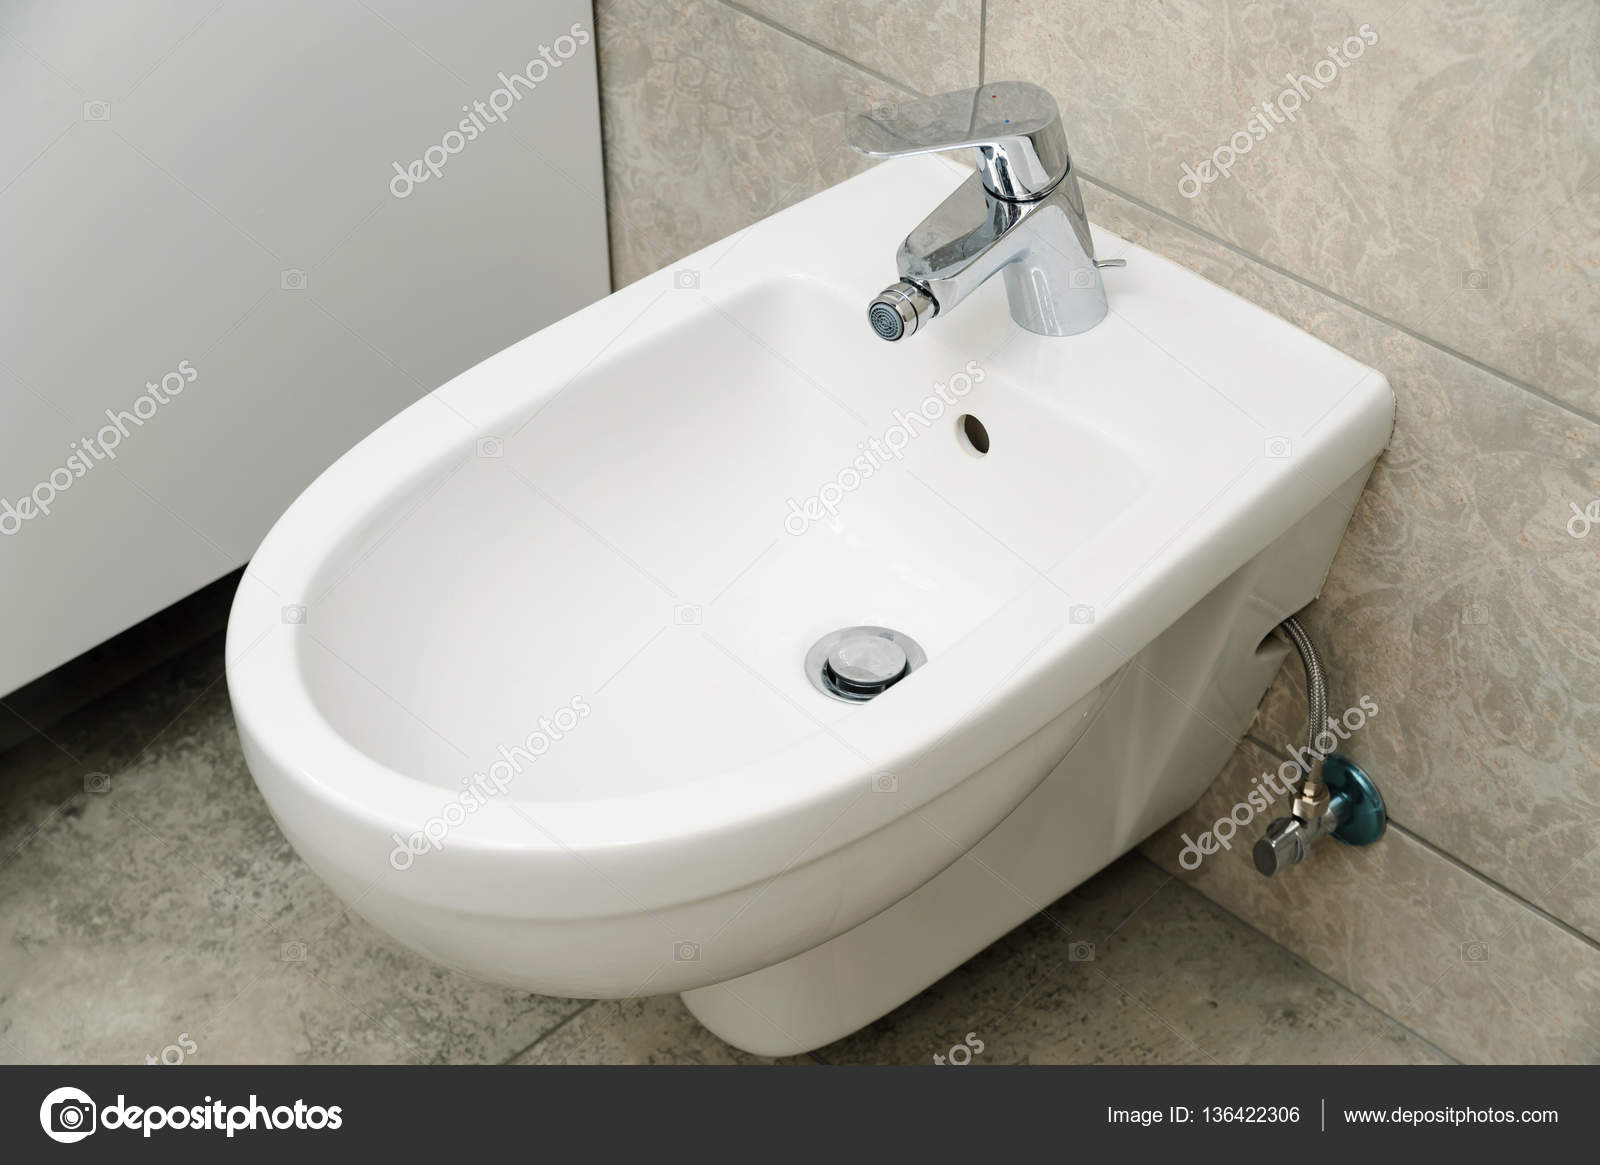 Bid suspenso de parede stock photo yunava1 136422306 for Desague bidet